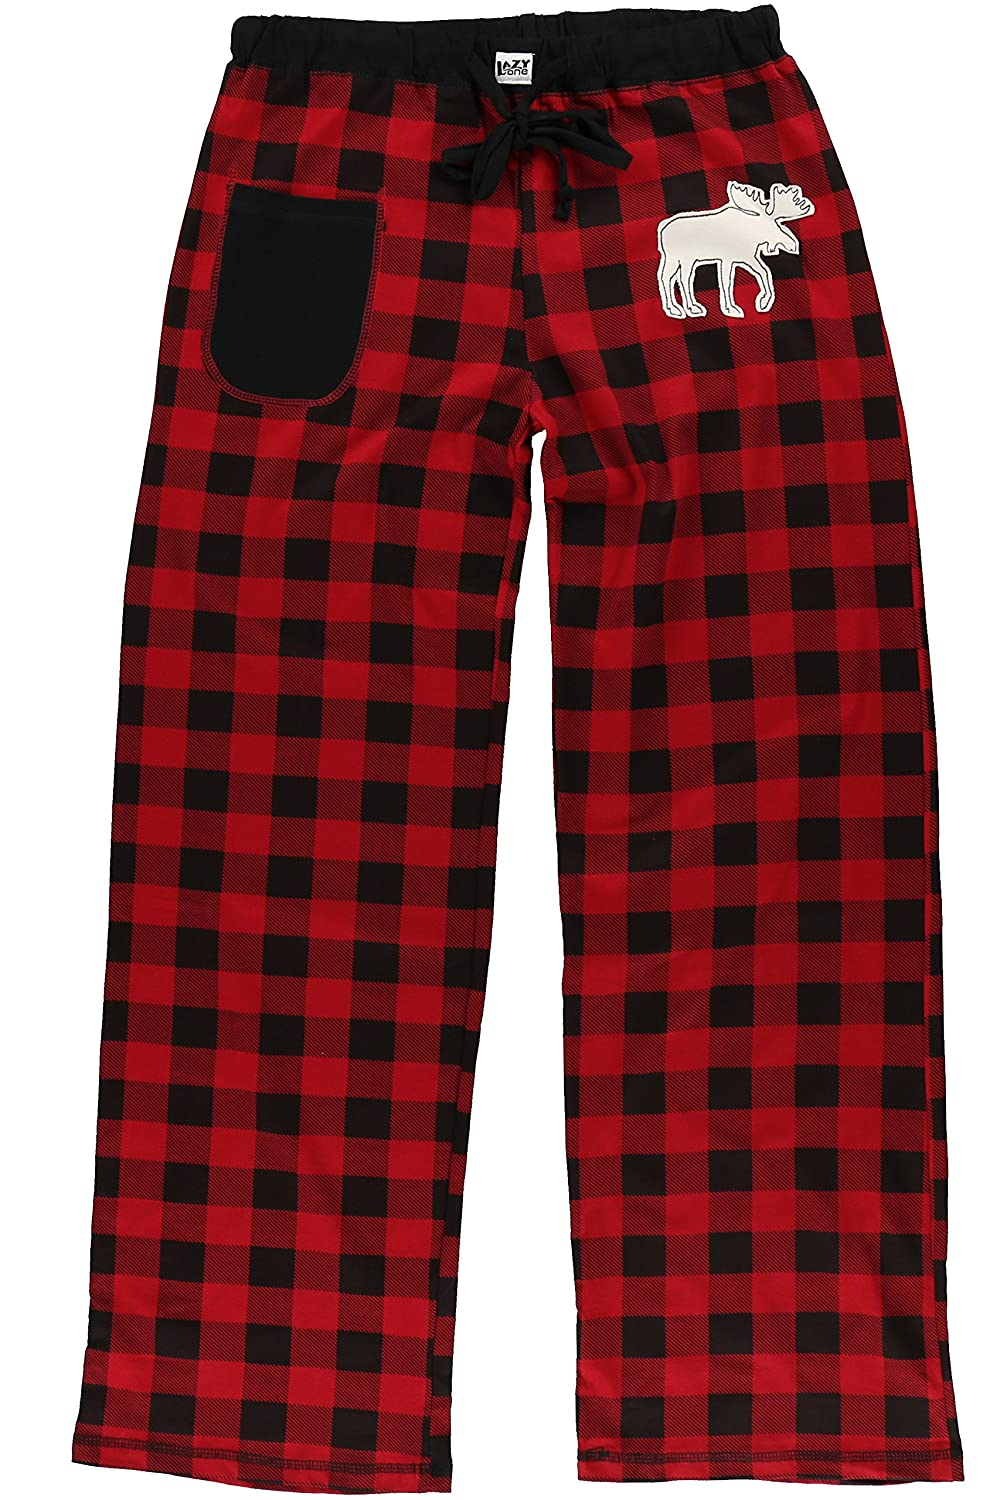 Women's Fitted Pajama Set and Separates by LazyOne   Fitted Pajama Set and Separates for Women